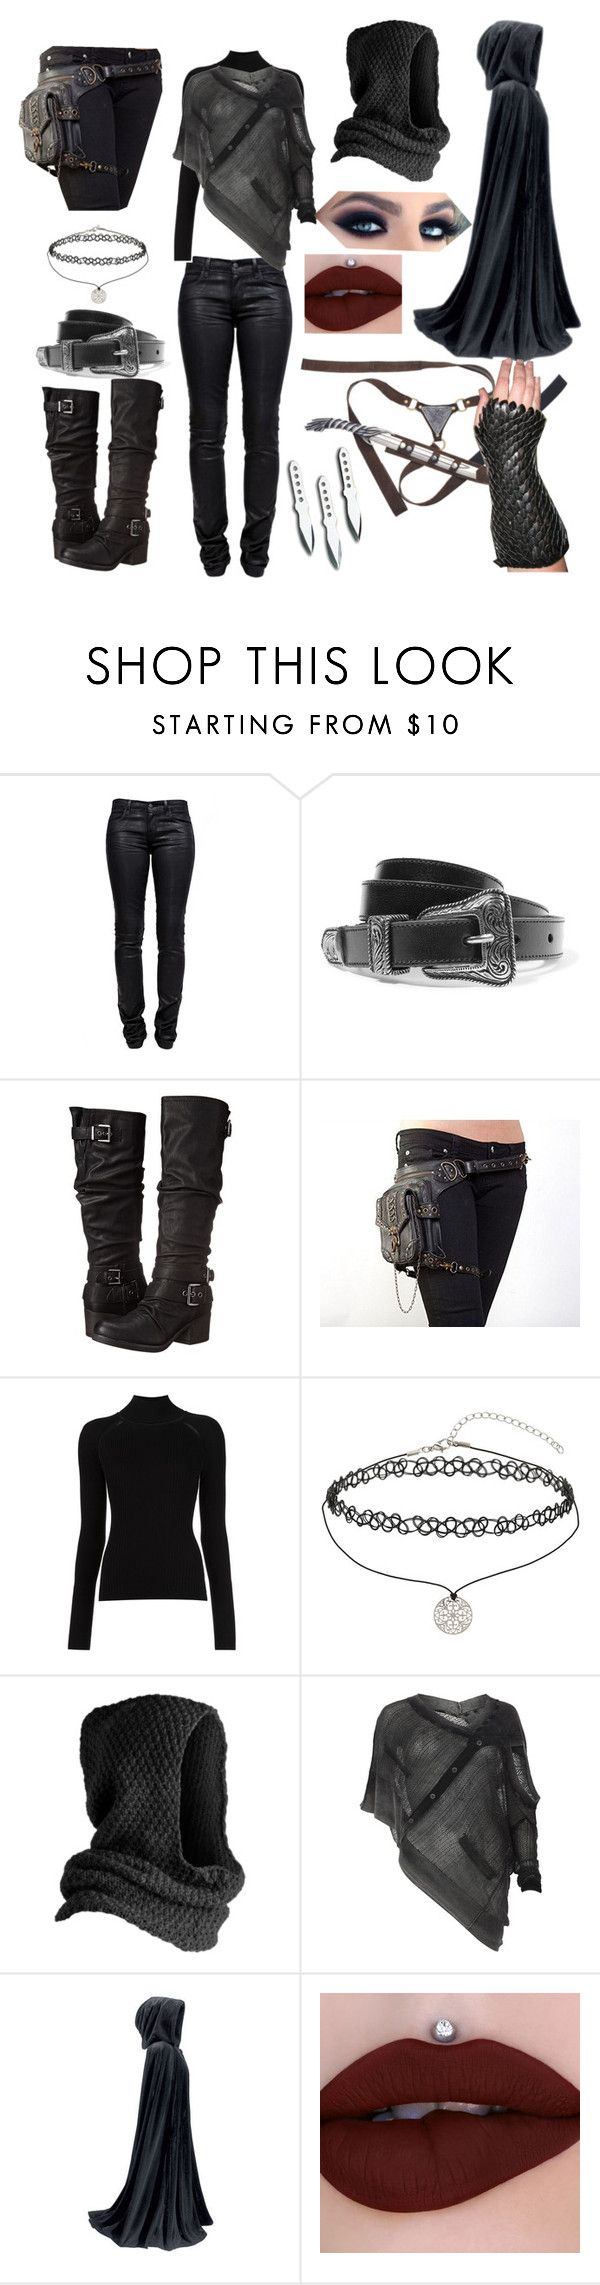 """LOTR Female Assassin Outfit #2"" by e-sekovanikj ❤ liked on Polyvore featuring J Brand, Yves Saint Laurent, Carlos by Carlos Santana, Misha Nonoo, Miss Selfridge, Pieces and AllSaints"